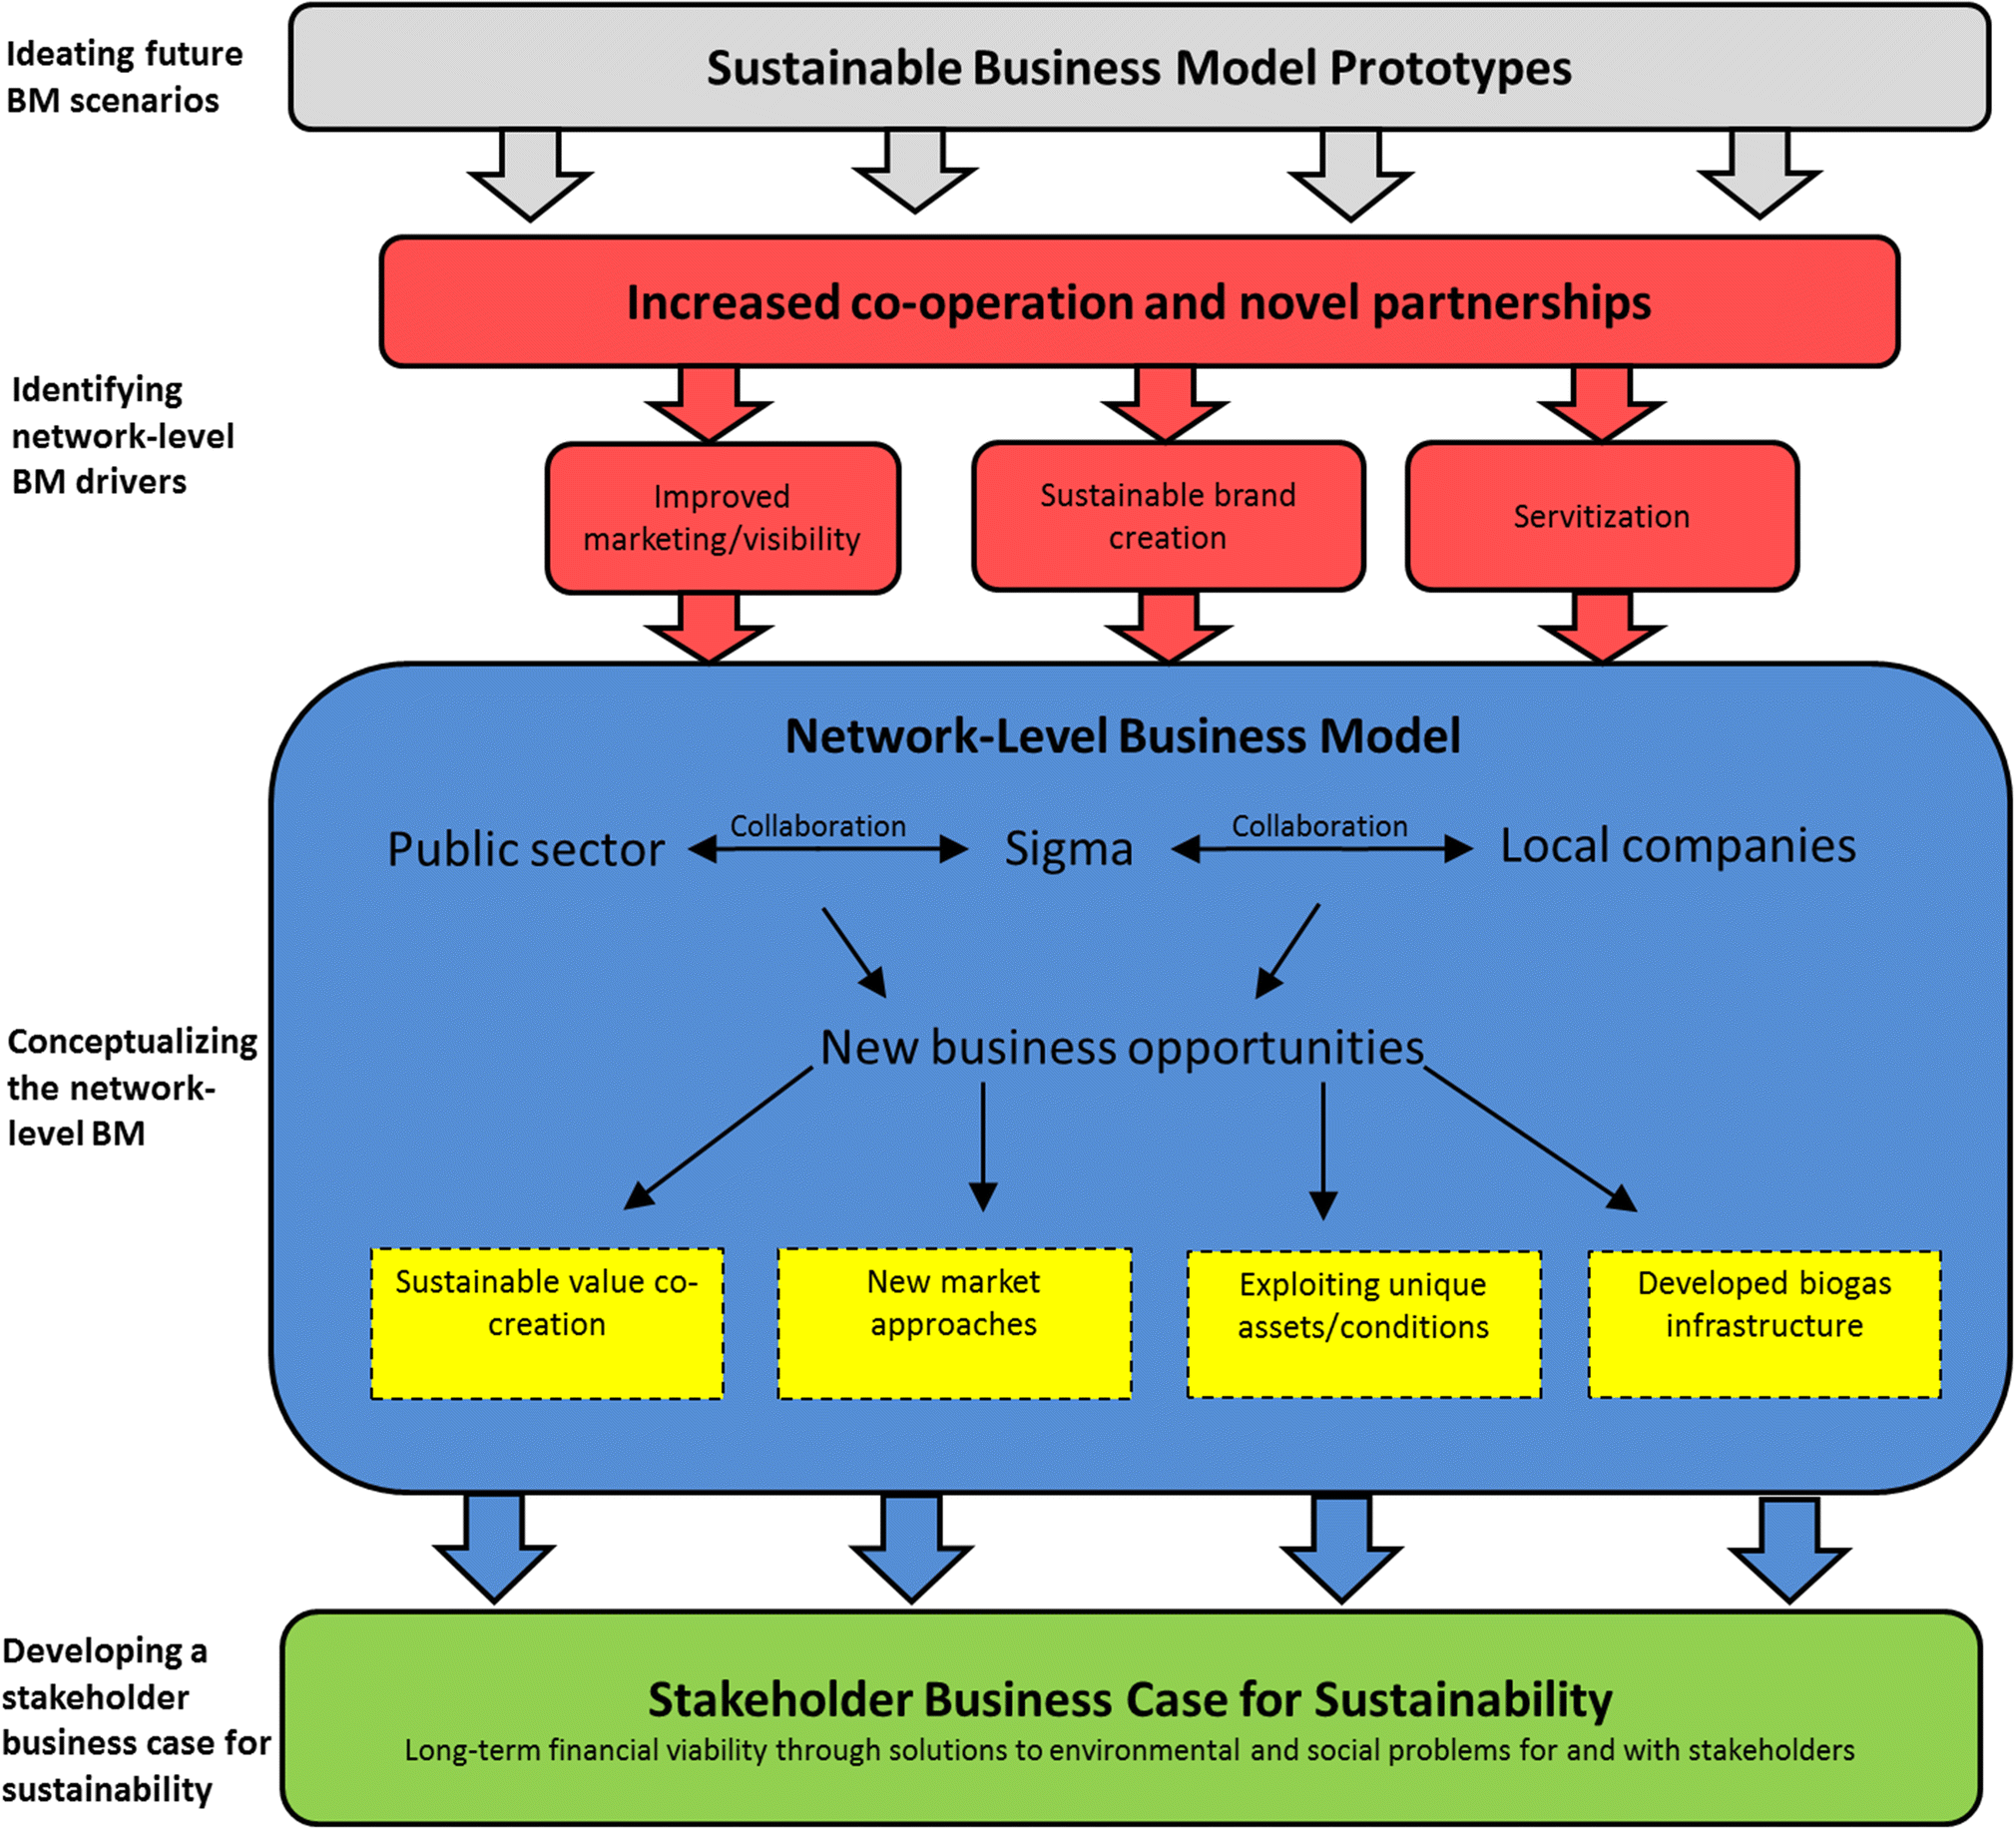 Business modelling in farm-based biogas production: towards network